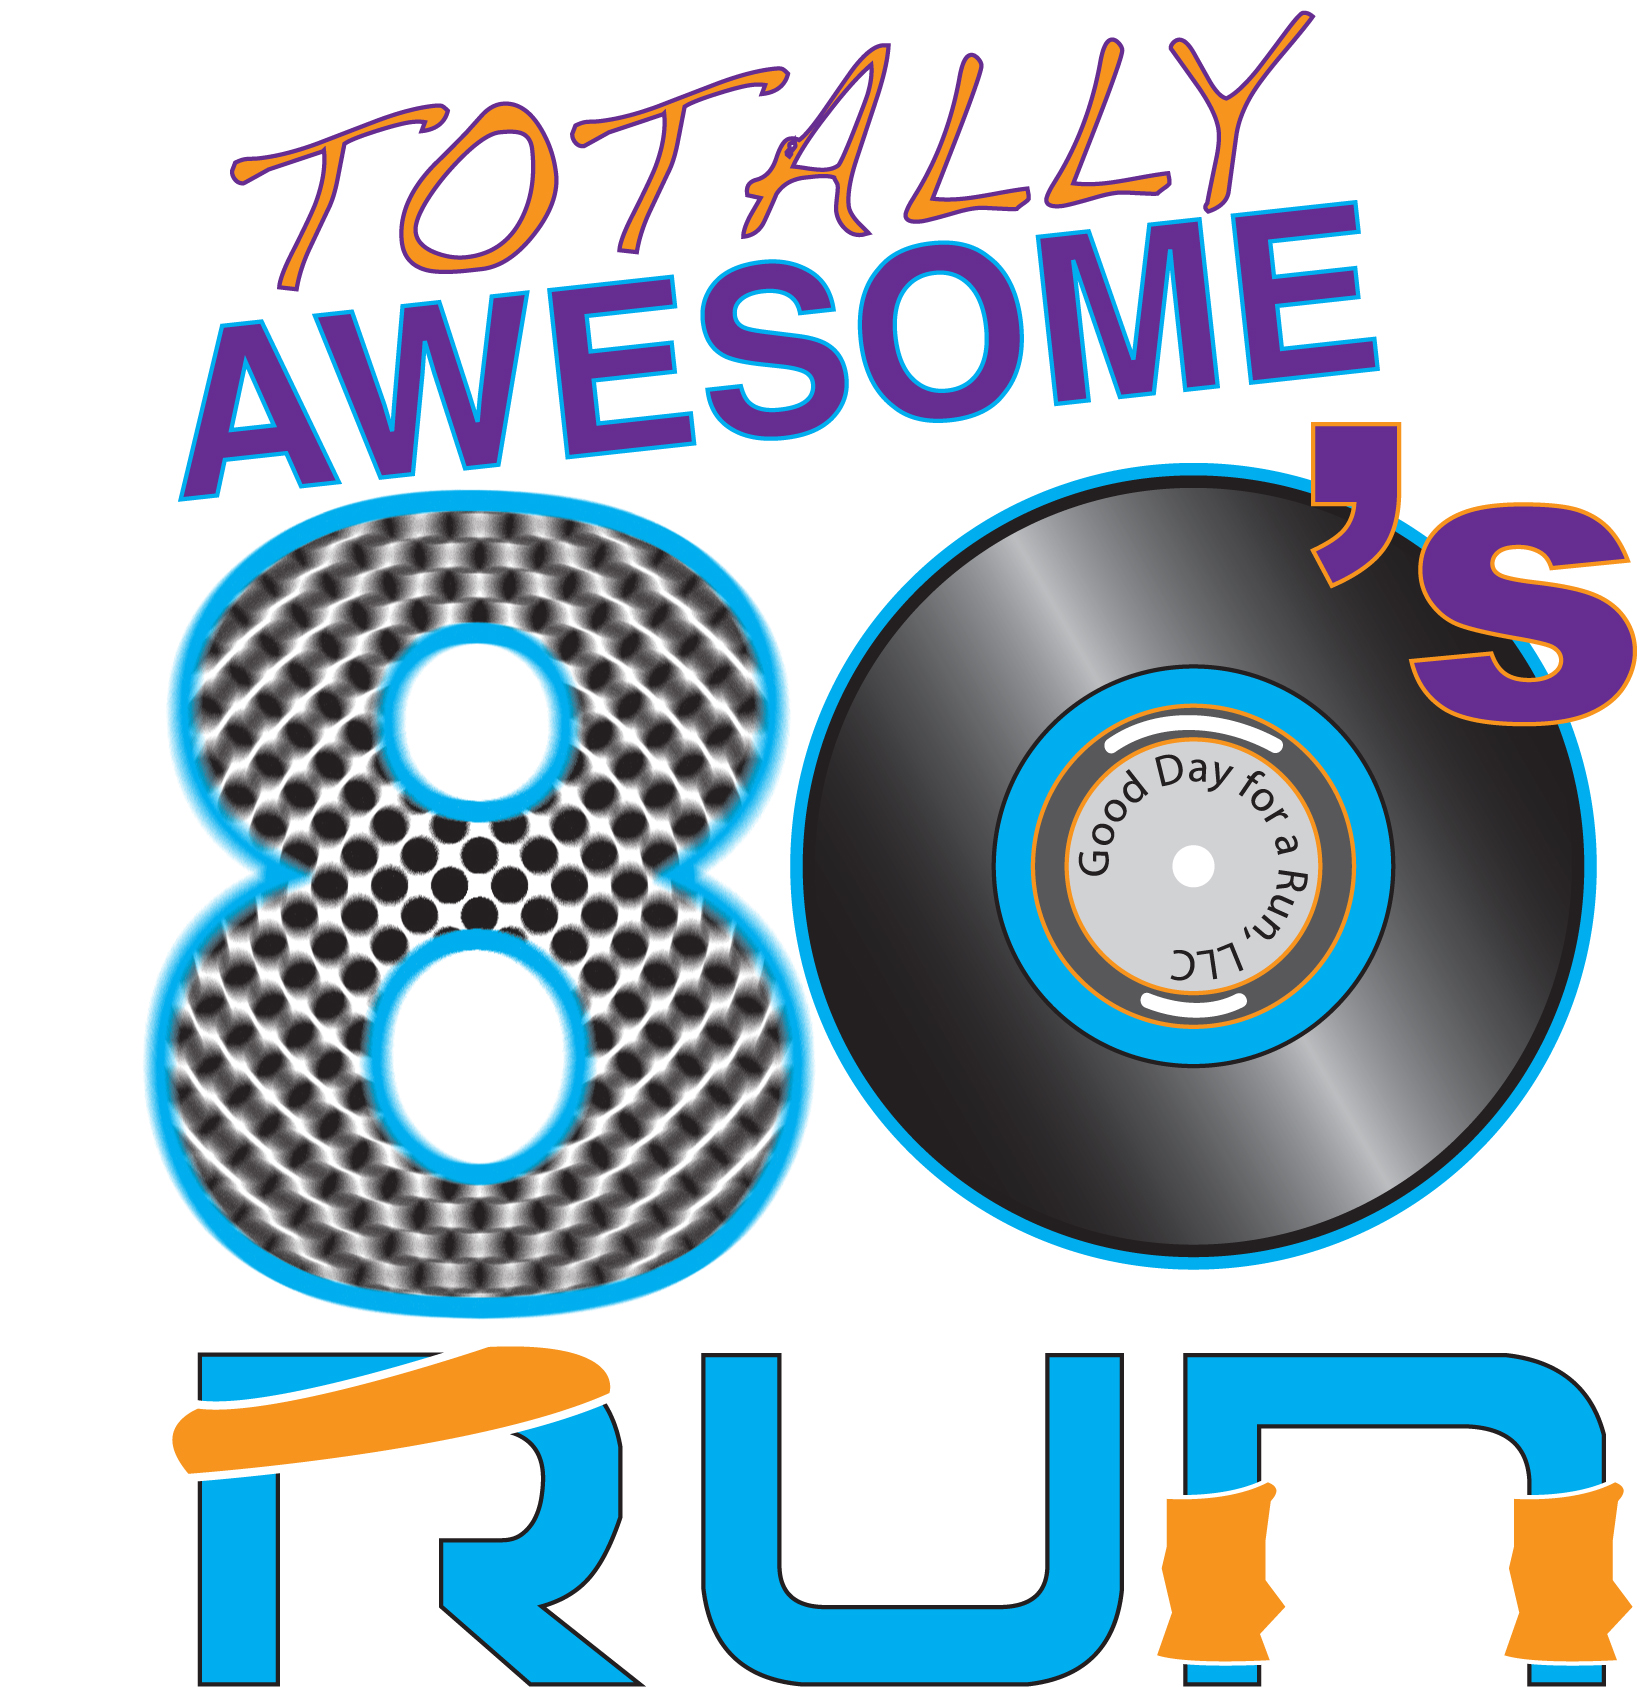 80sRun_logo_color_outlines